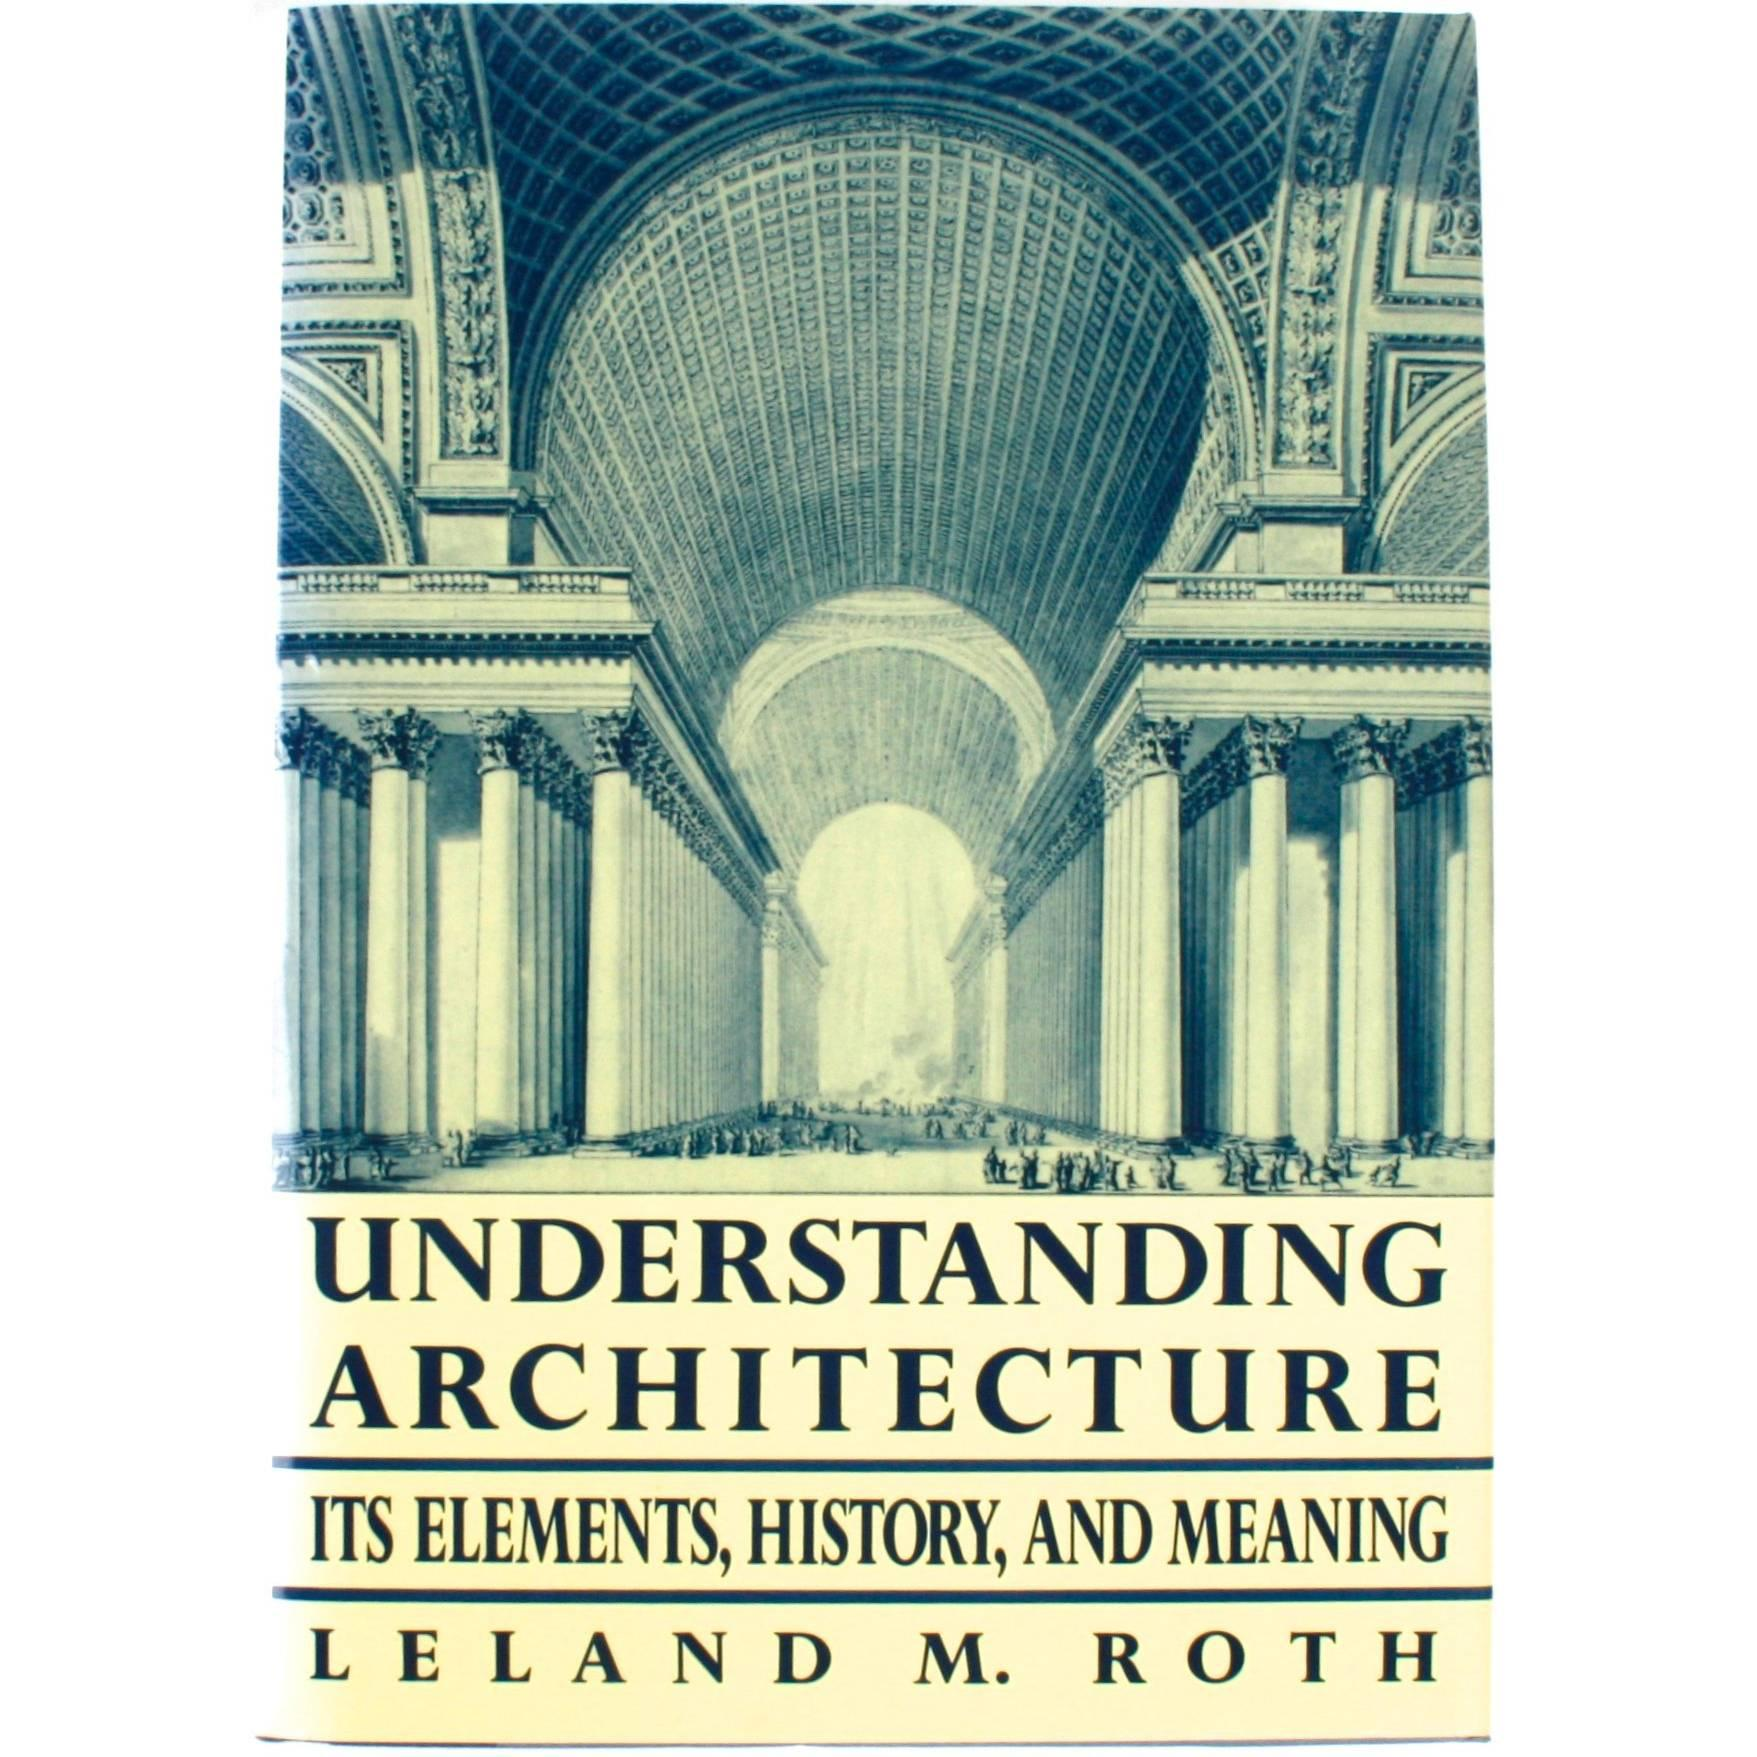 Understanding Architecture, It's Elements, History and Meaning, First Edition